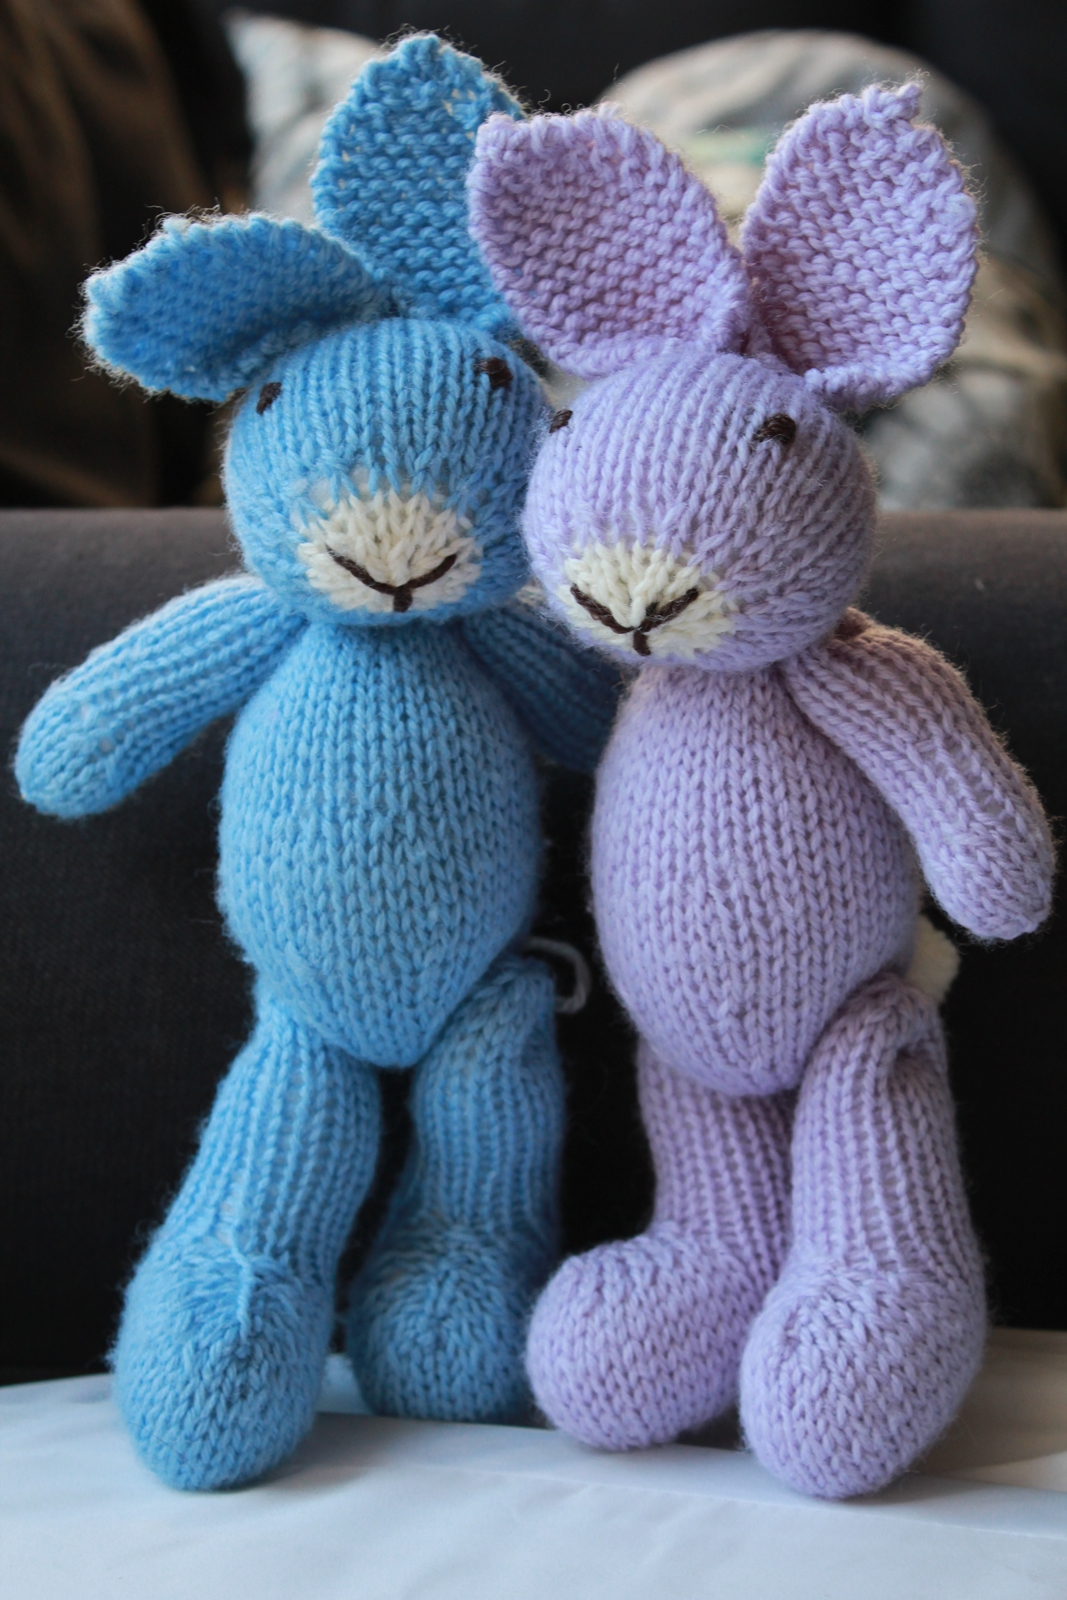 Easter Bunny Knitting Pattern : knitted rabbit